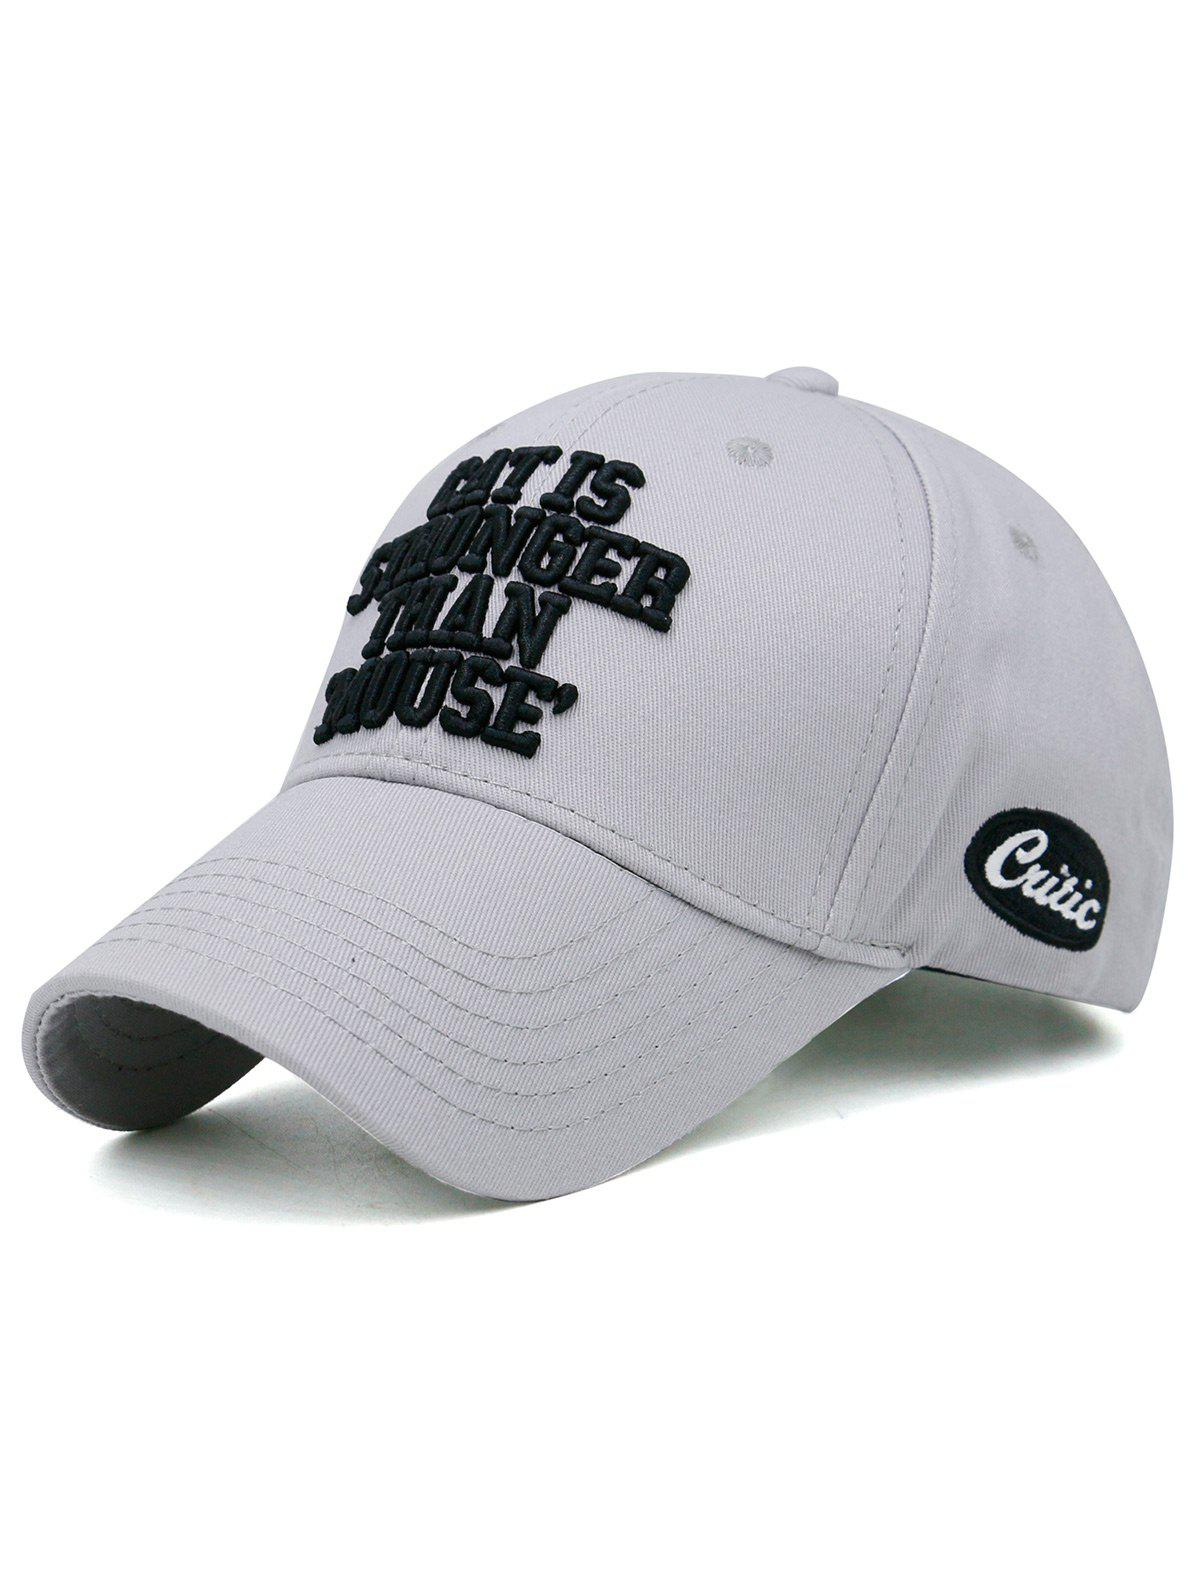 Funny Letter Embroidery Adjustable Baseball Cap - LIGHT GRAY